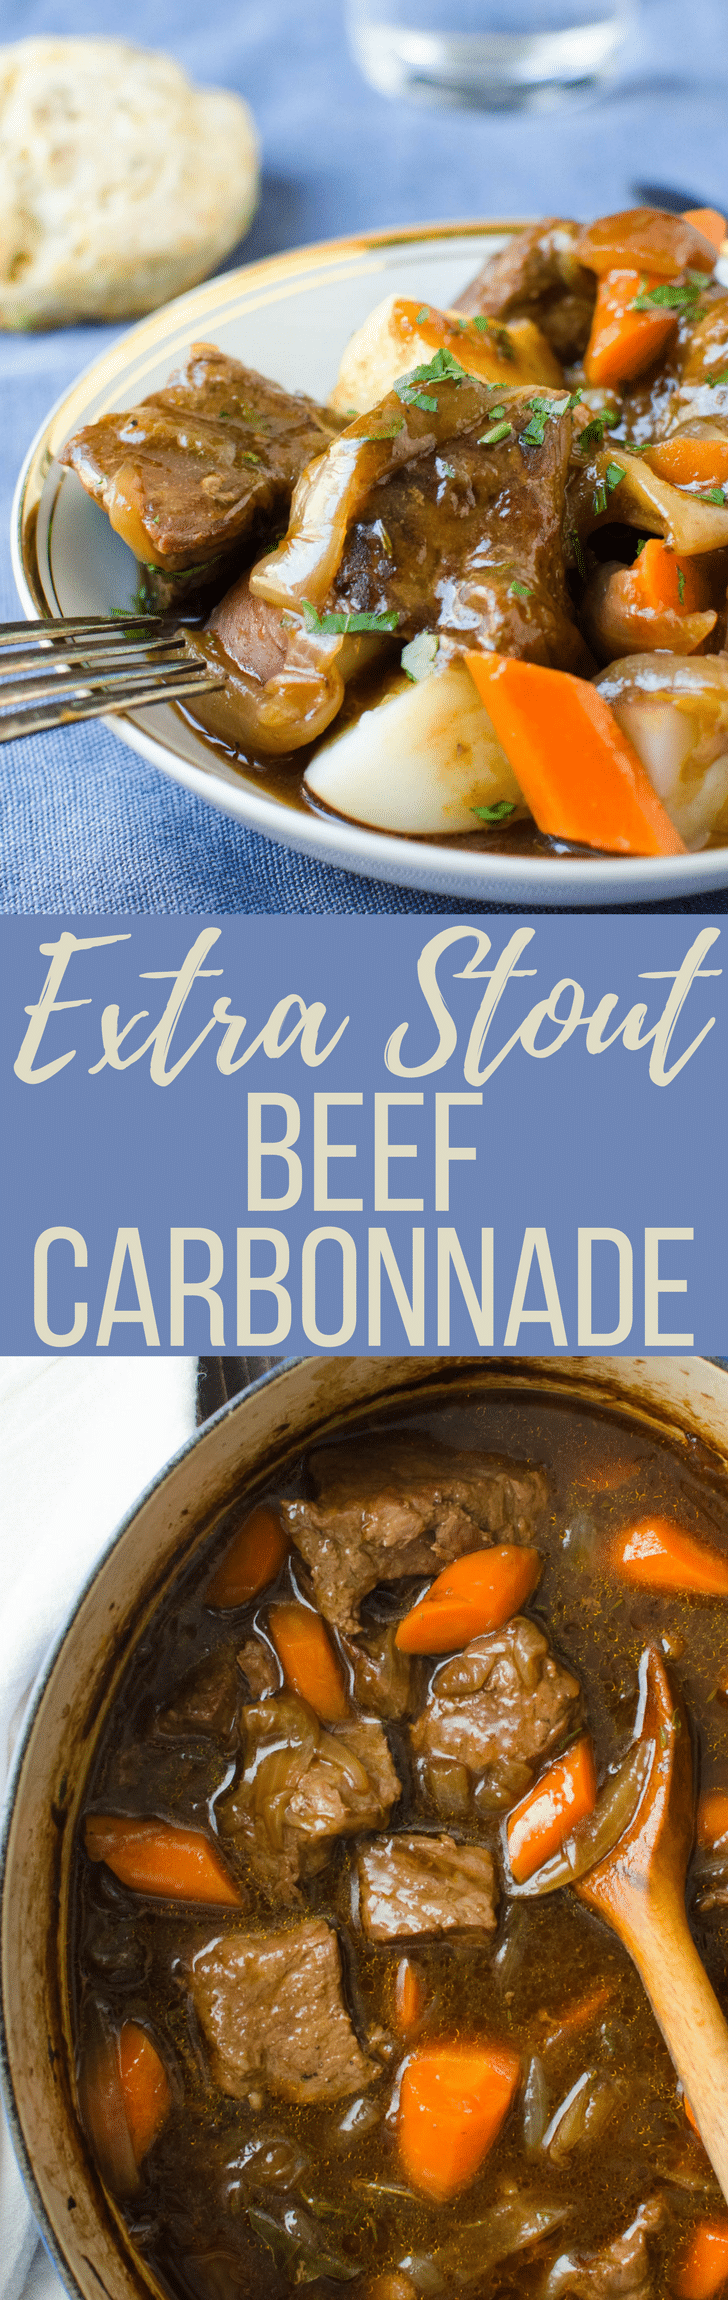 The BEST beef stew recipe is this Extra Stout Beef Carbonnade with potatoes, onions and carrots simmered in Guinness Extra Stout! Hearty and warming! #beef #beefstew #carbonnade #beer #guinness #extrastout #comfortfood #stew #carrots #onions #beefstewrecipe #bestbeefstew #braising #slowcookerrecipes #dutchovenrecipes #stpattysday #saintpatricks #stpatricksdayrecipes